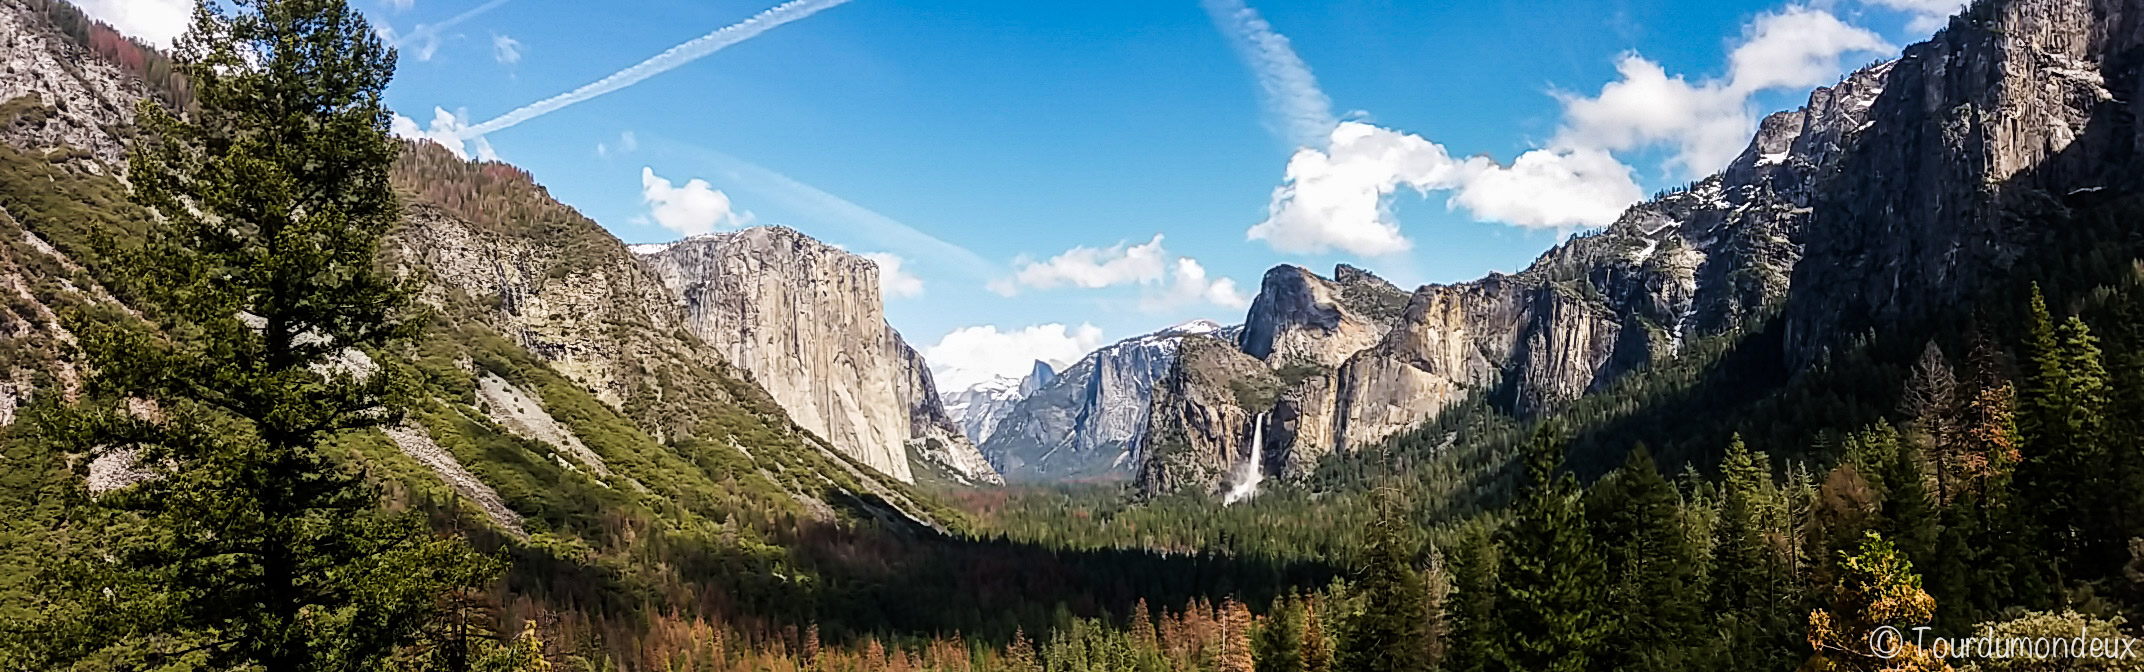 yosemite-national-park-californie